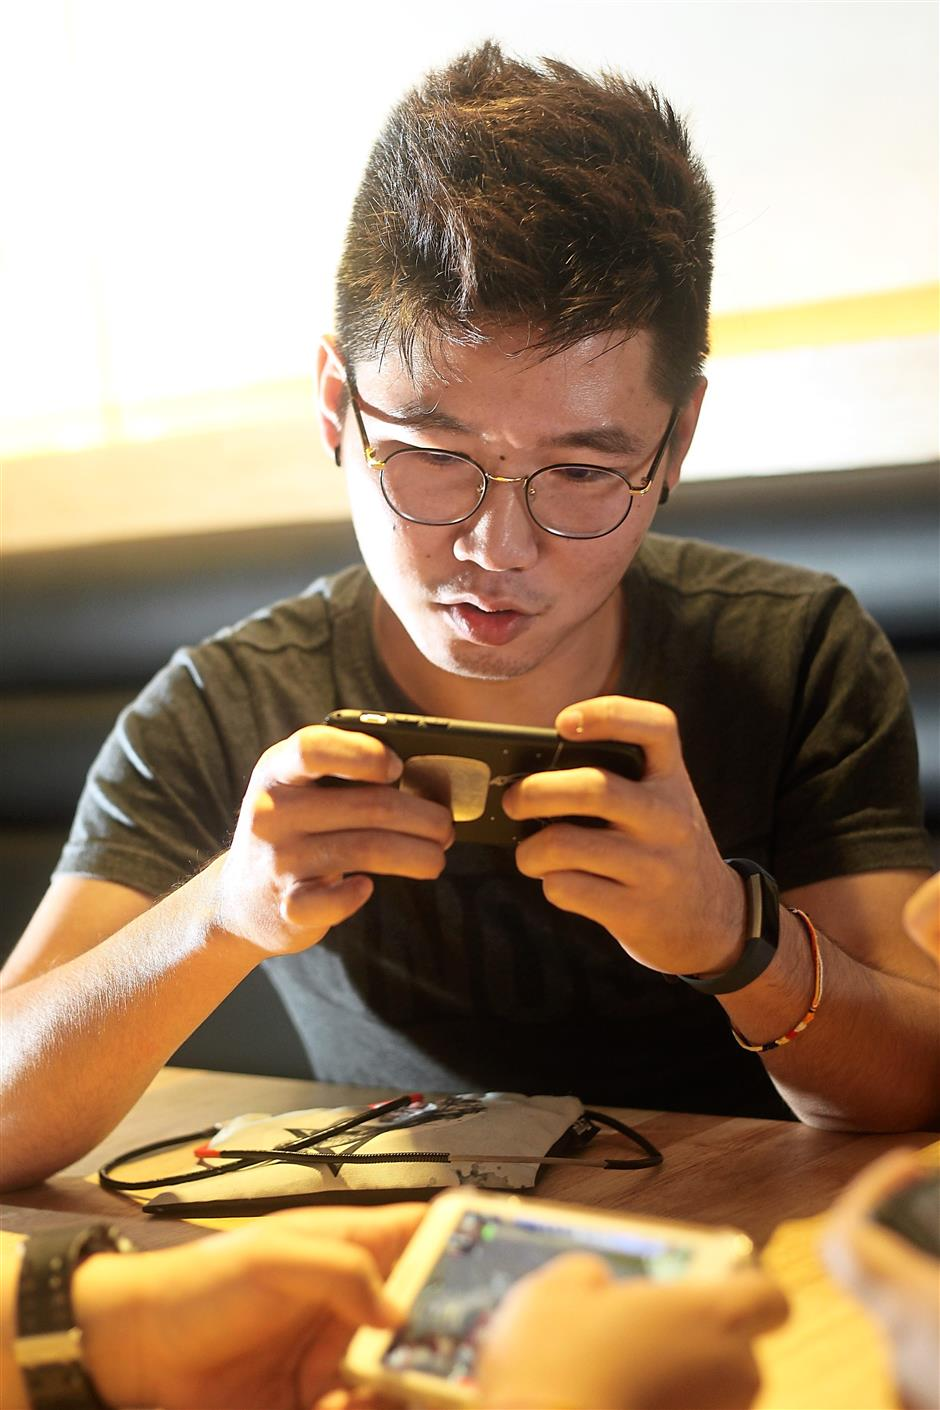 Vincent Yang often plays PUBG Mobile as a squad with his friends, and they even meet up on weekends to spend hours on the game. — AZMAN GHANI/The Star